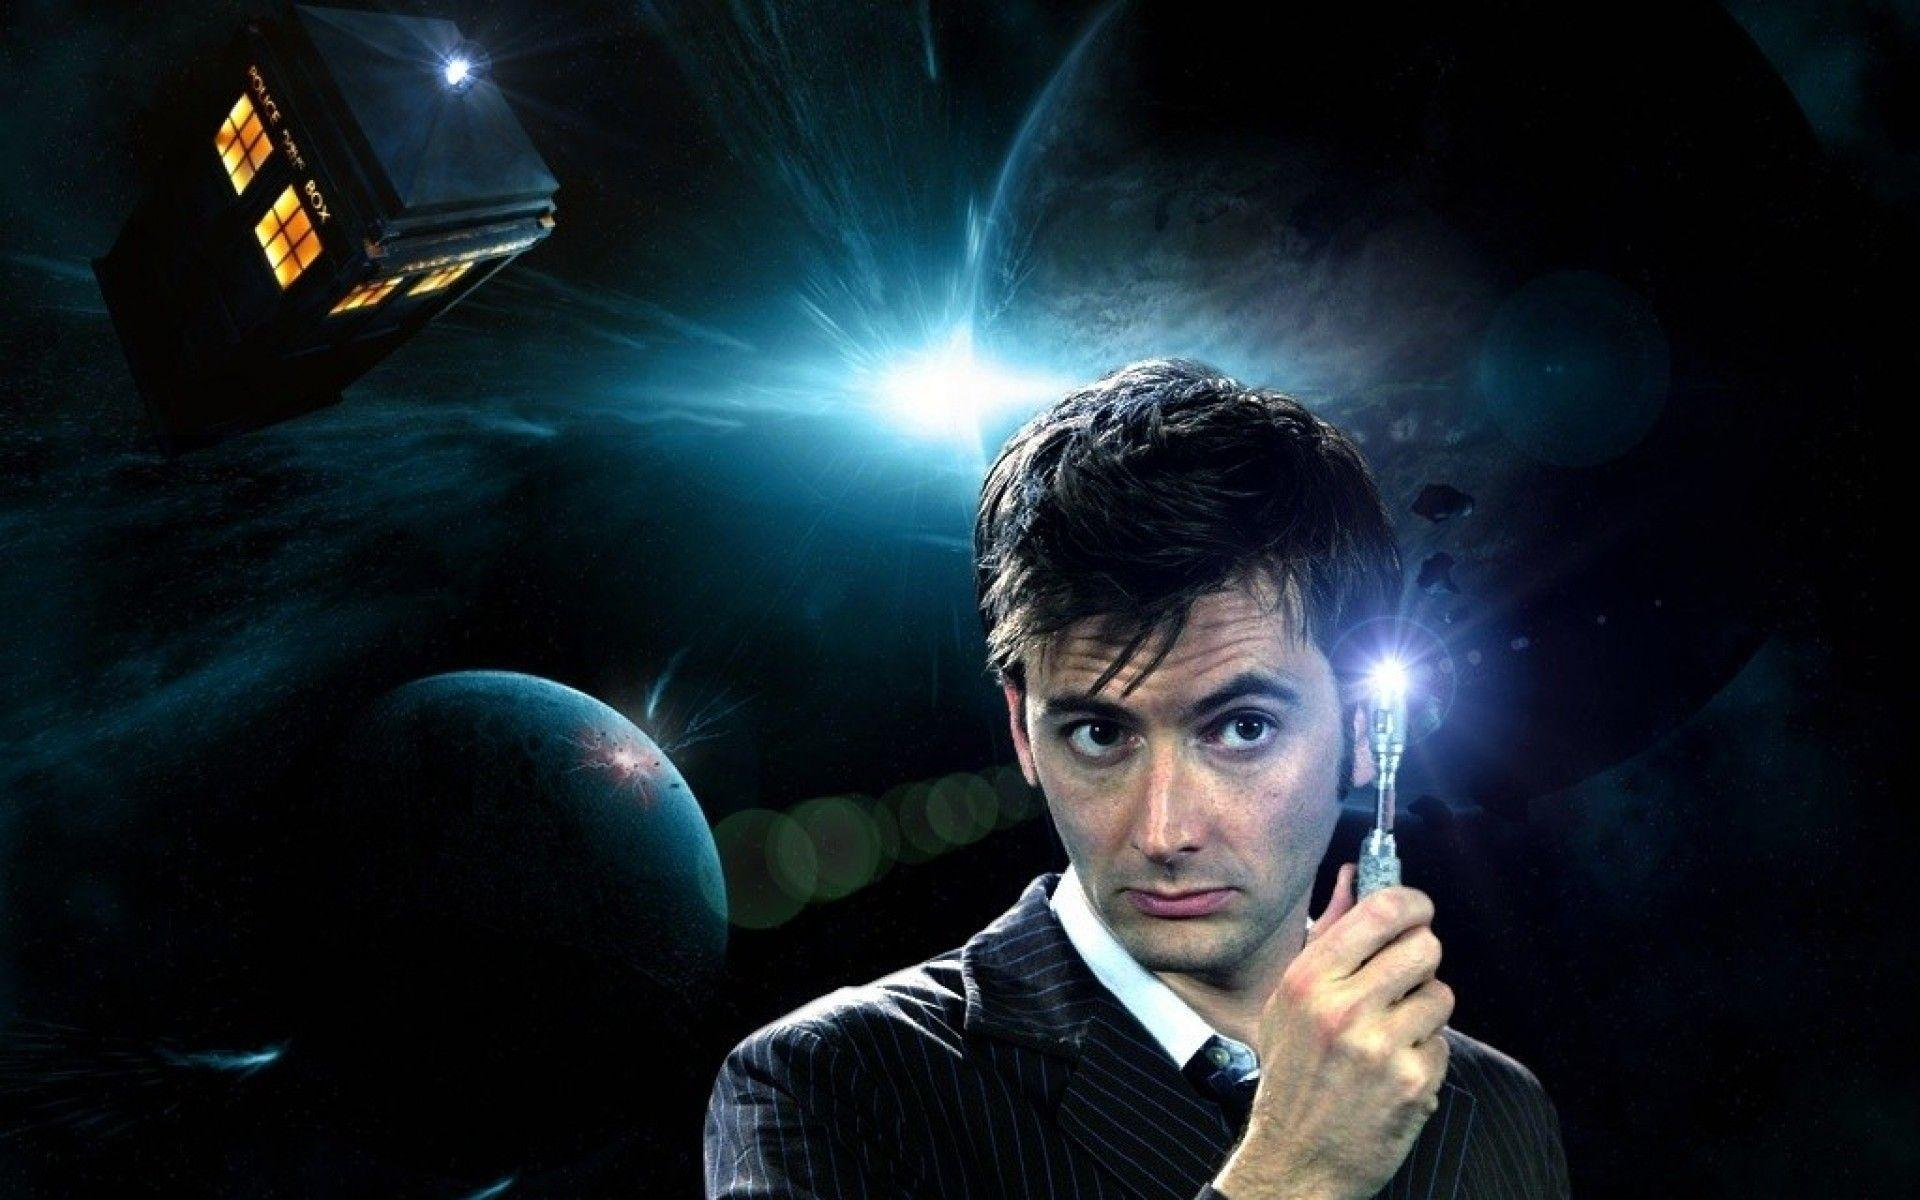 Doctor Who 10th Doctor Wallpapers - Wallpaper Cave